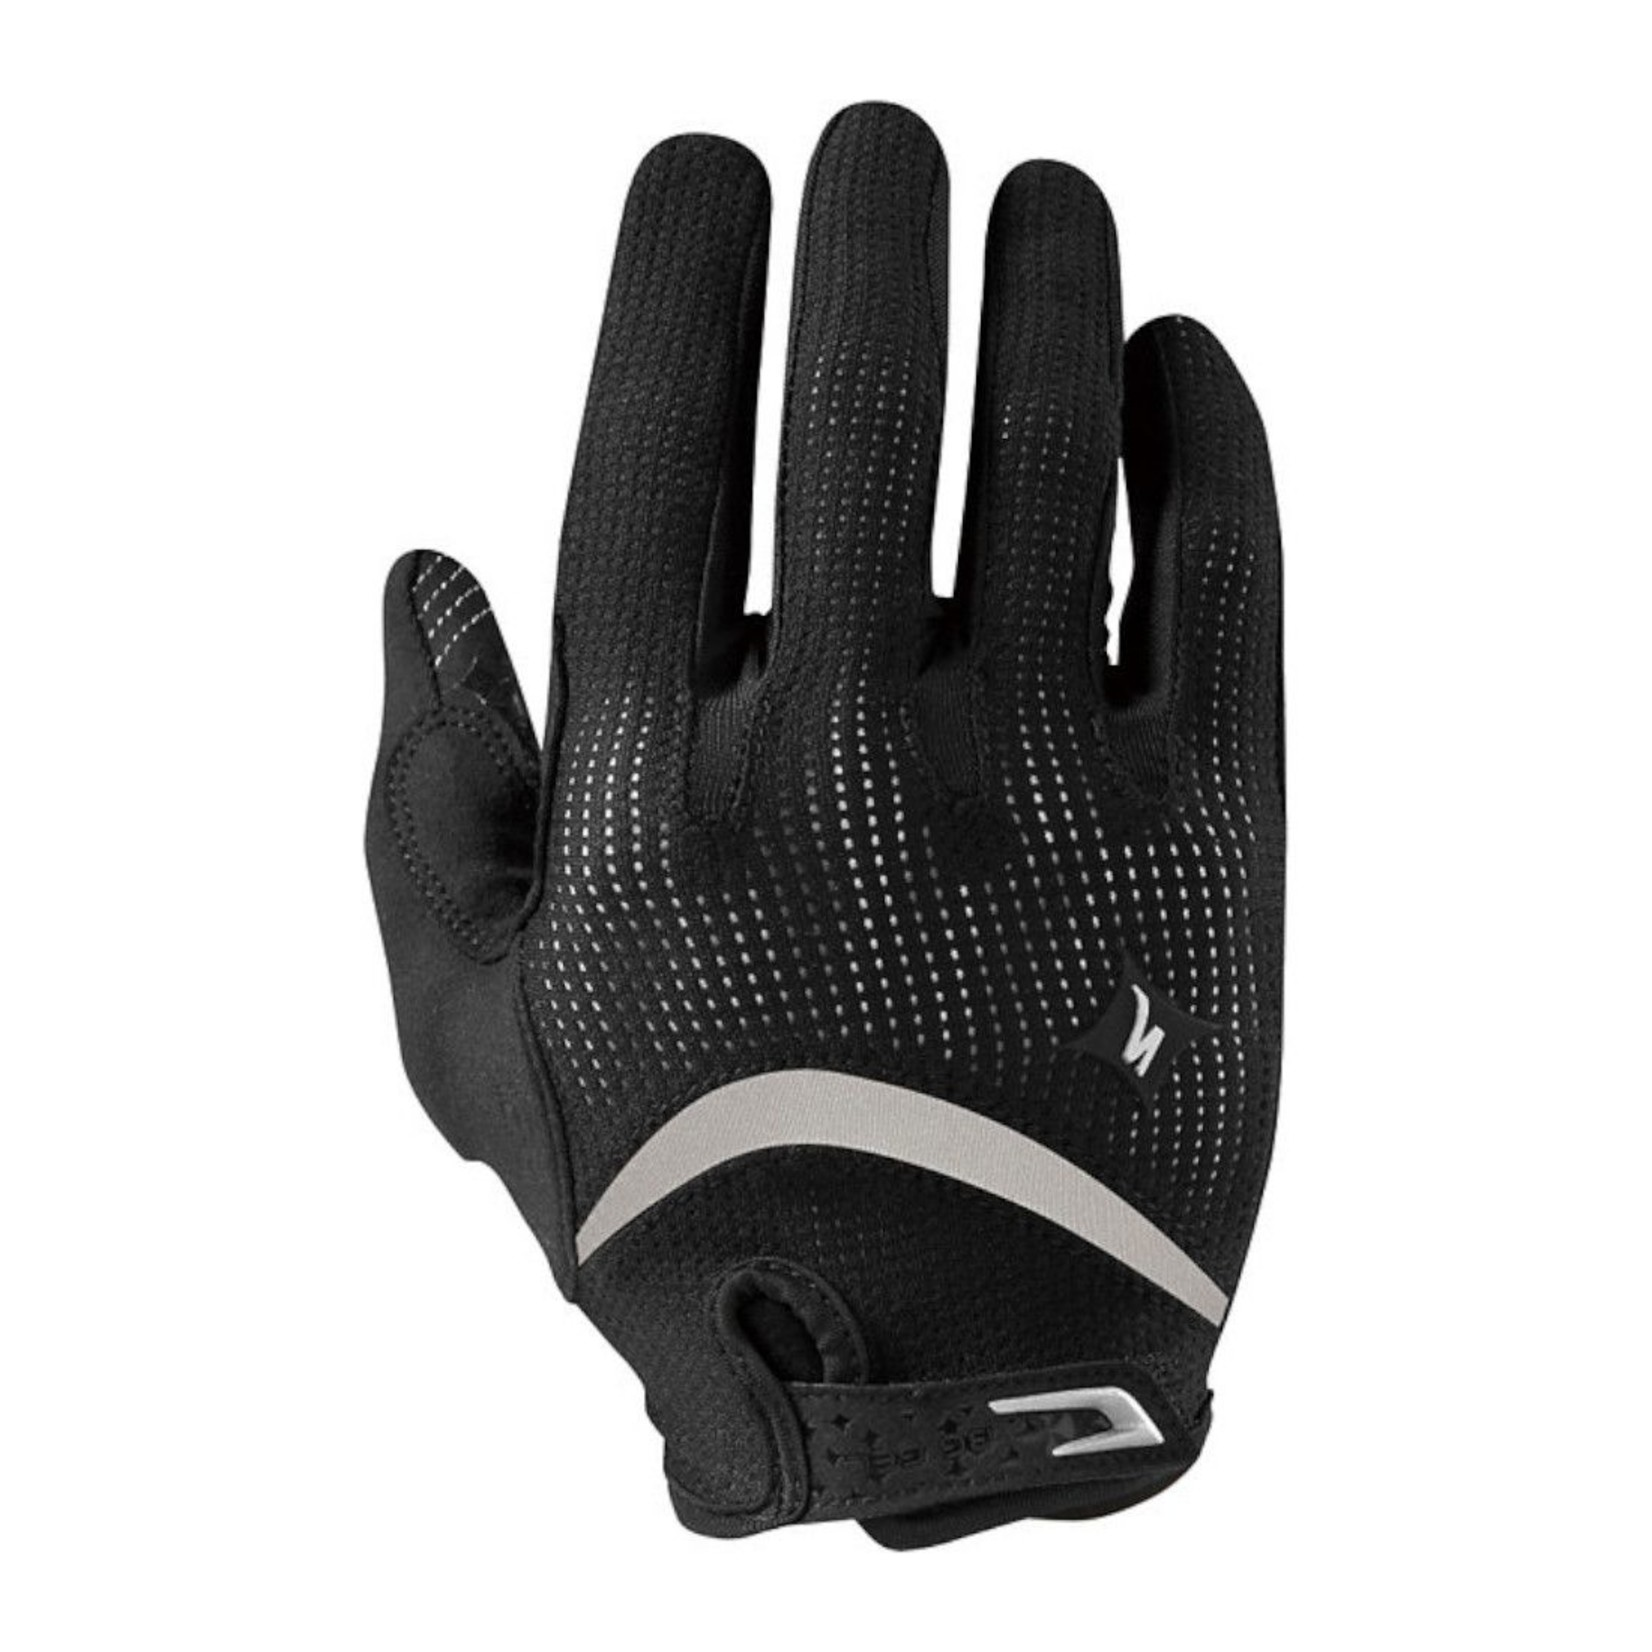 Specialized Specialized BG Gel Glove LF Women's